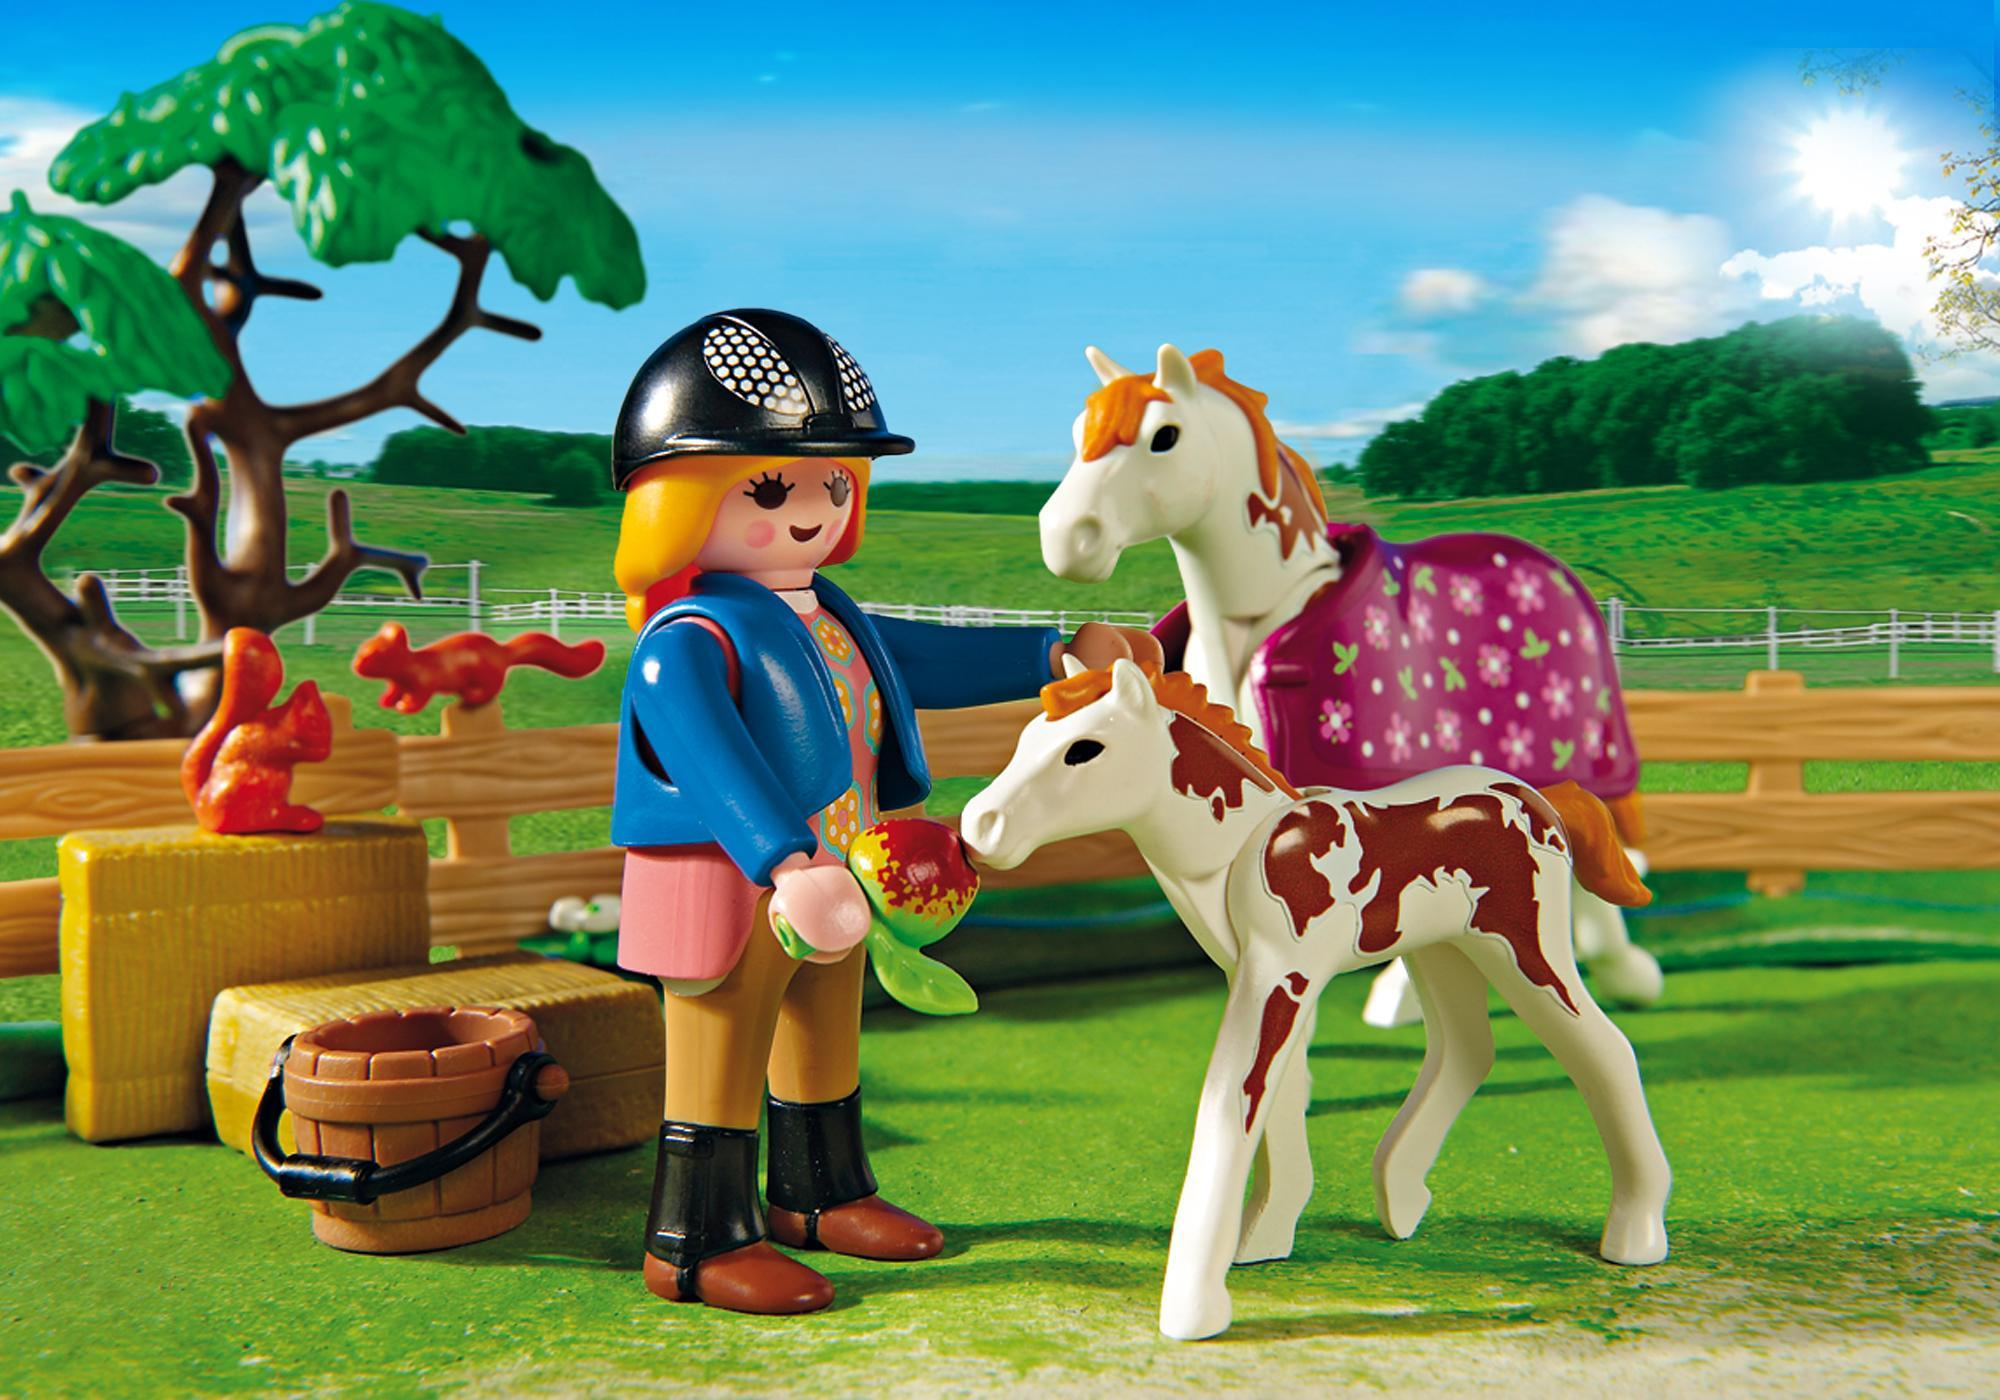 http://media.playmobil.com/i/playmobil/5227_product_extra1